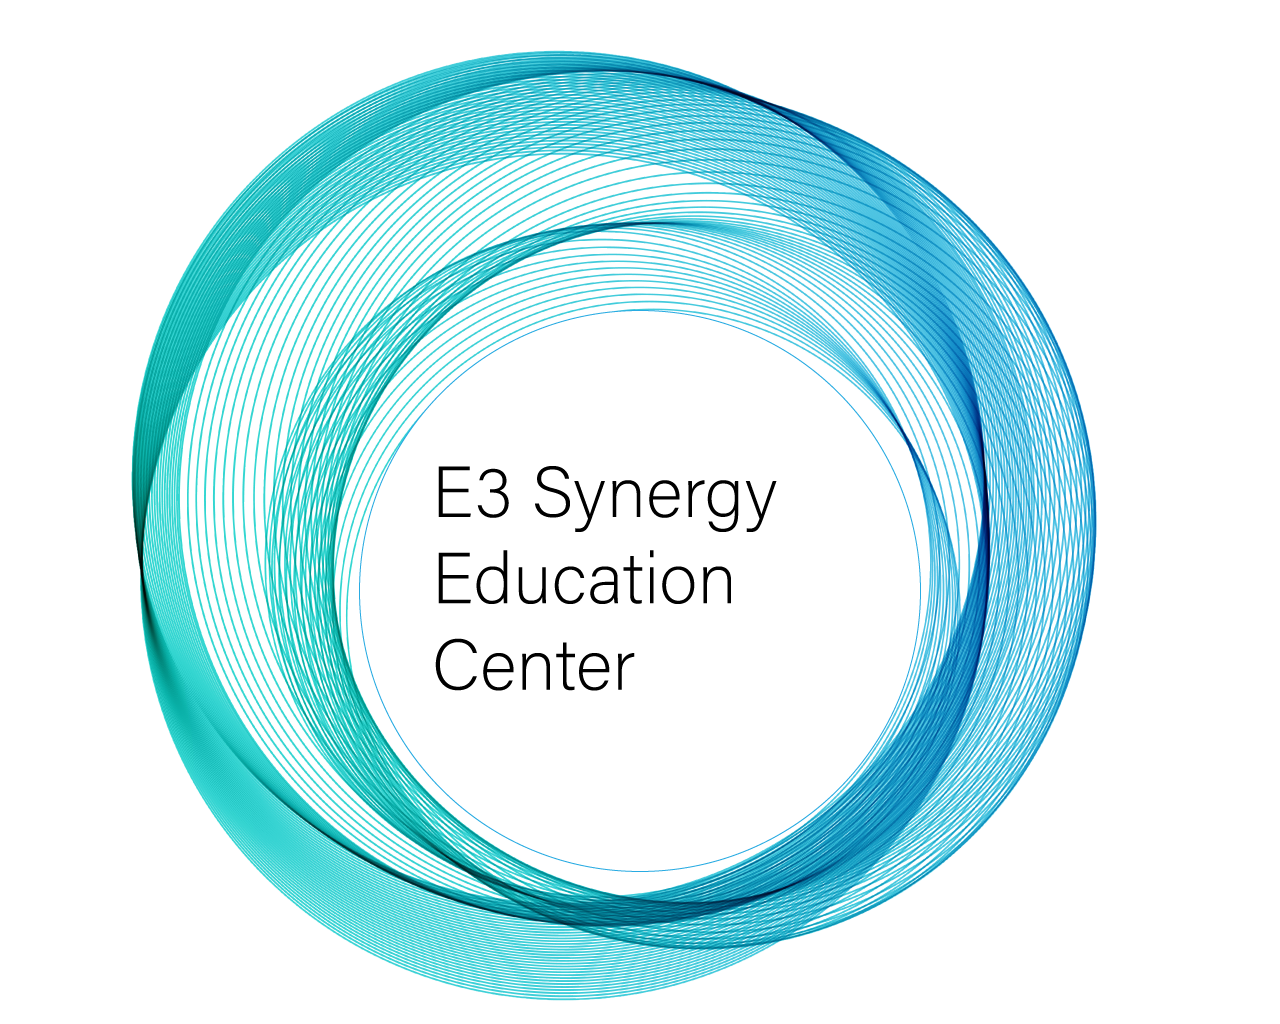 E3 Synergy Education Center